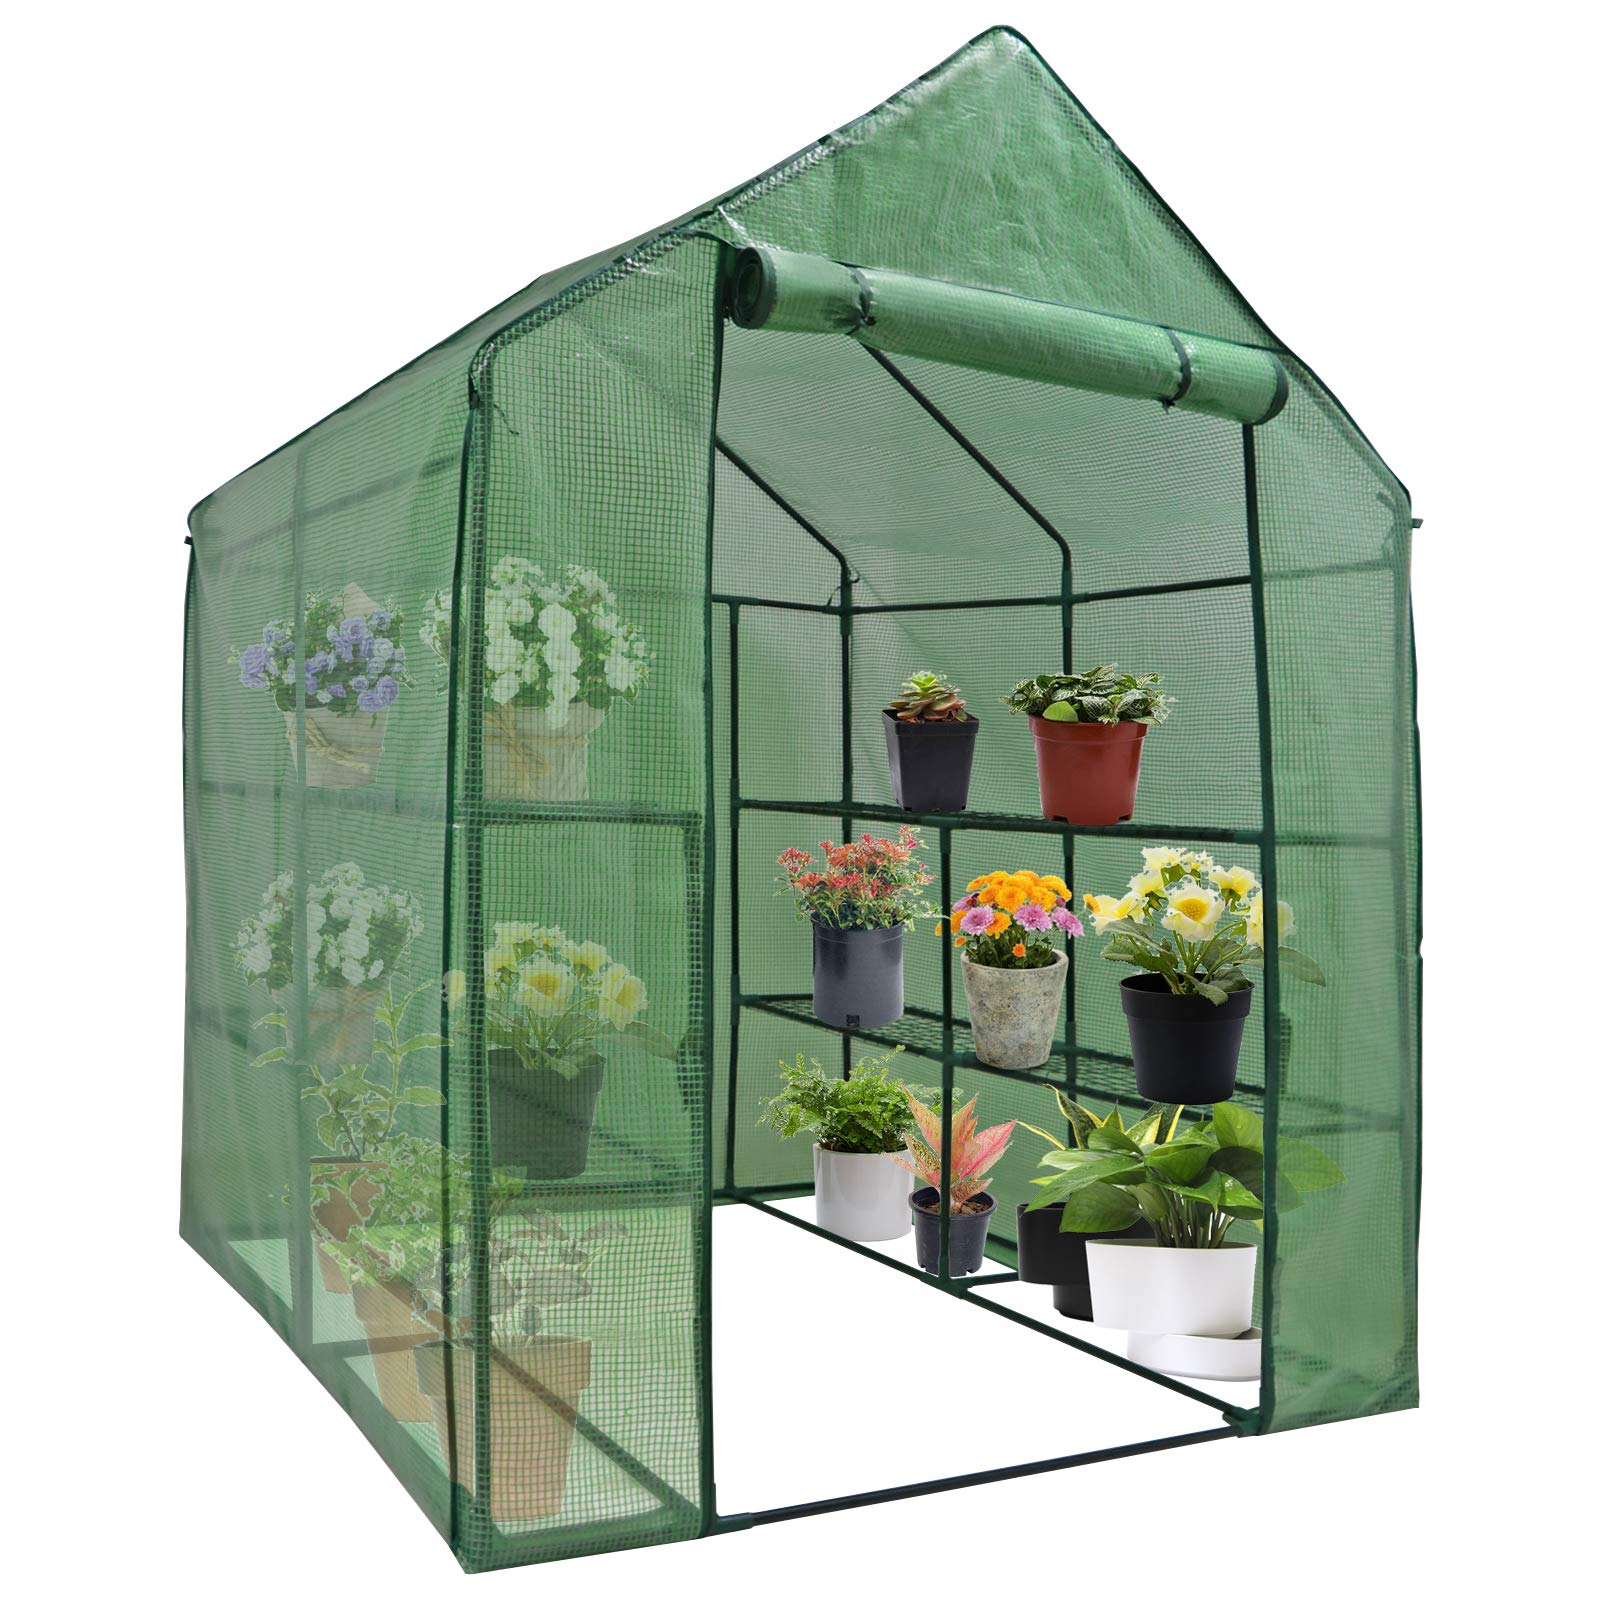 Mini Walk-in Greenhouse Indoor Outdoor -2 Tier 8 Shelves- Portable Plant Gardening Greenhouse (57''L x 57''W x 77''H), Grow Seeds & Seedlings, Herbs Flowers or Tend Potted Plants by Nova Microdermabrasion (Image #1)